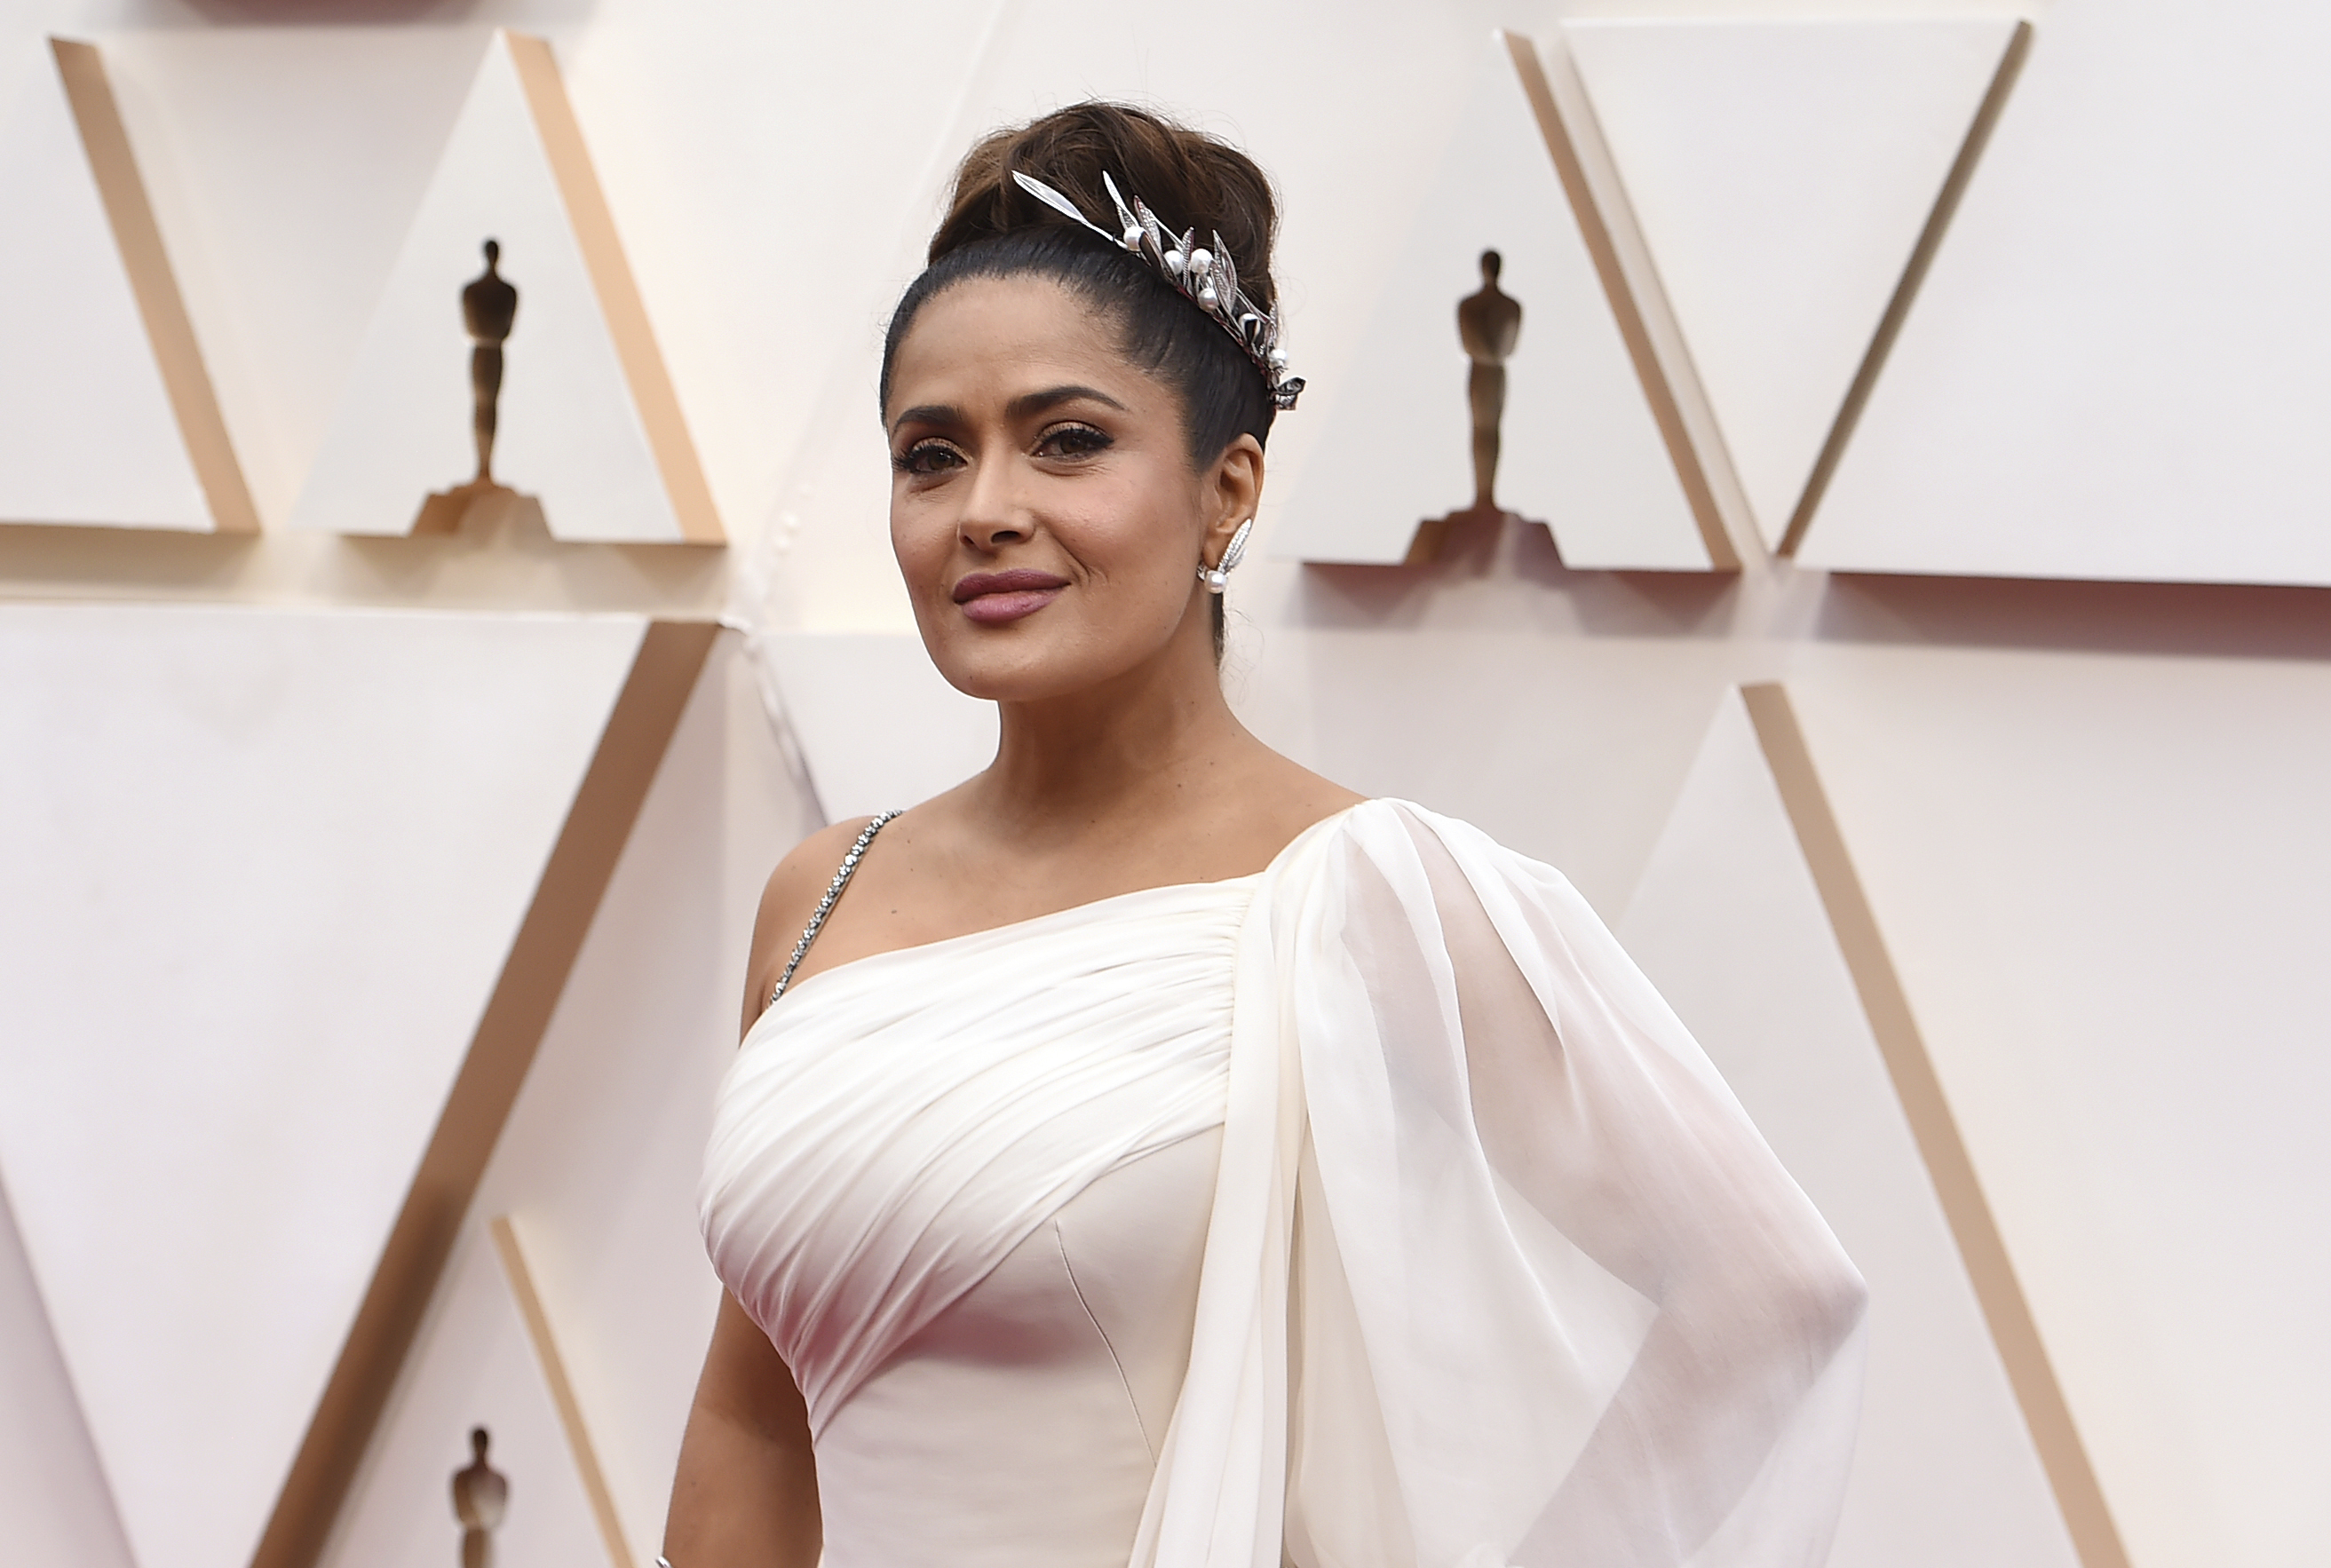 Salma Hayek arrives at the Oscars on Sunday, Feb. 9, 2020, at the Dolby Theatre in Los Angeles. (Photo by Jordan Strauss/Invision/AP)